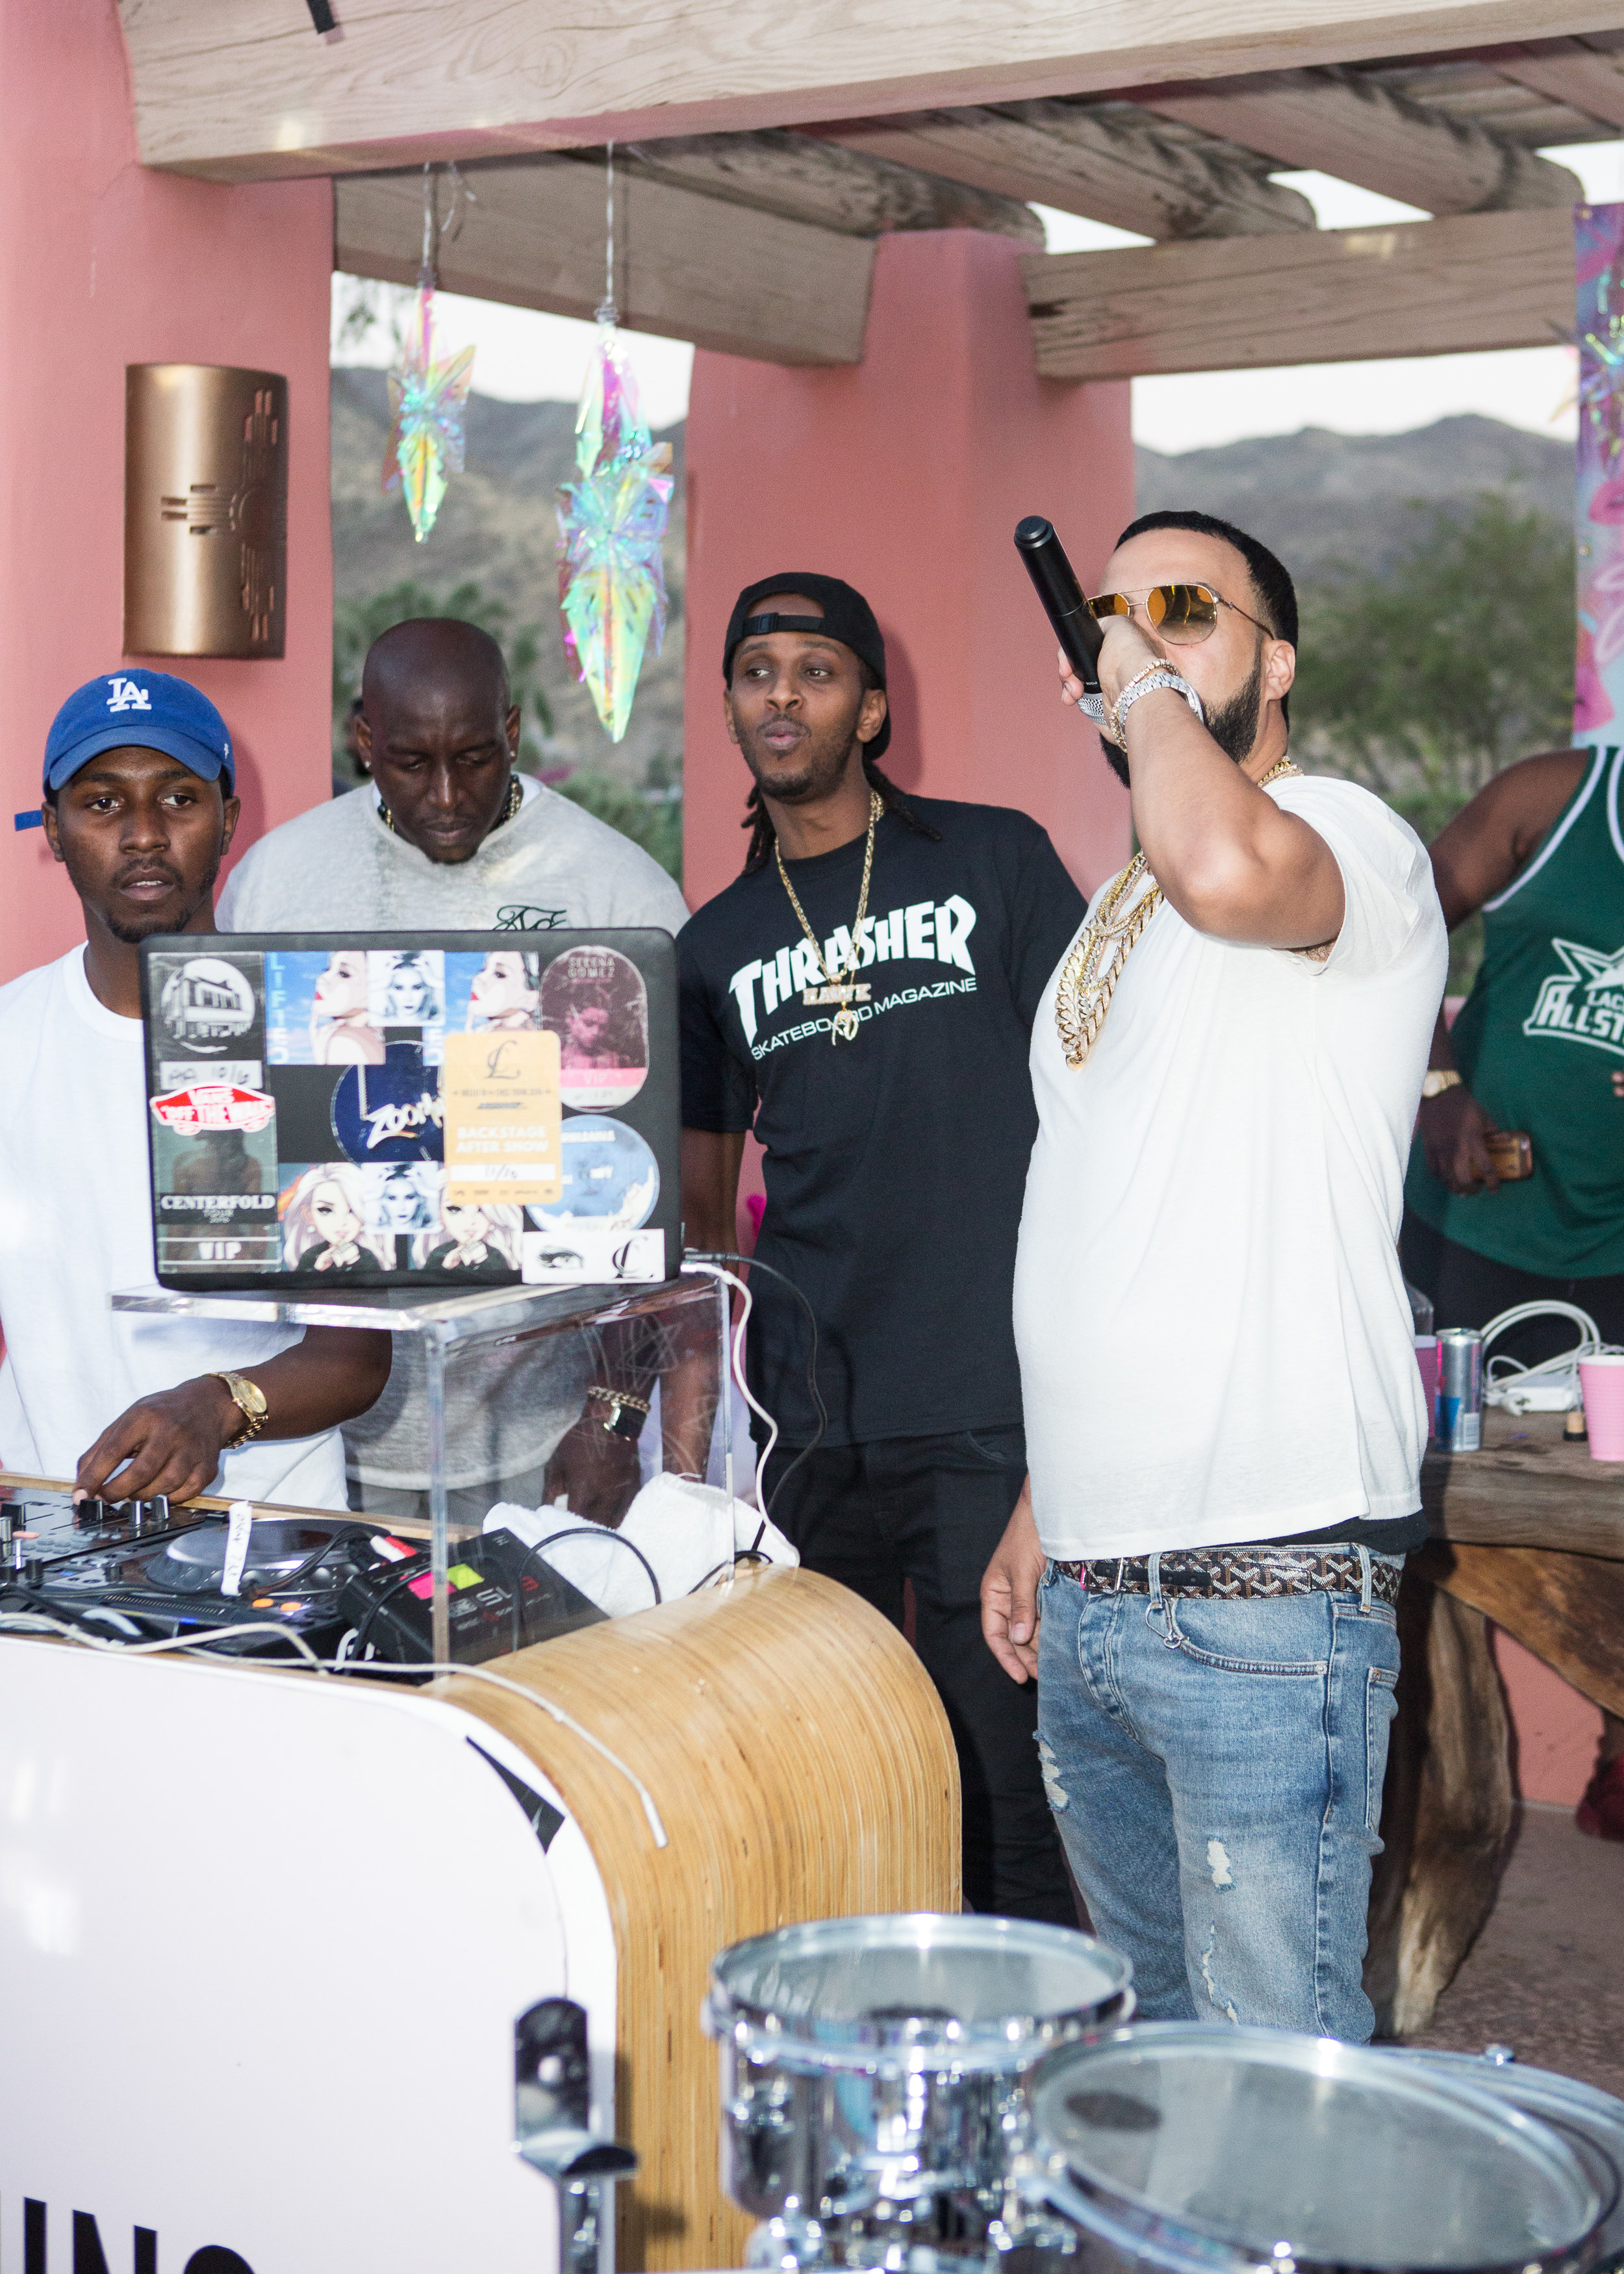 Ultimate Hollywood Coachella Poolside Party french montana dj booth.jpg